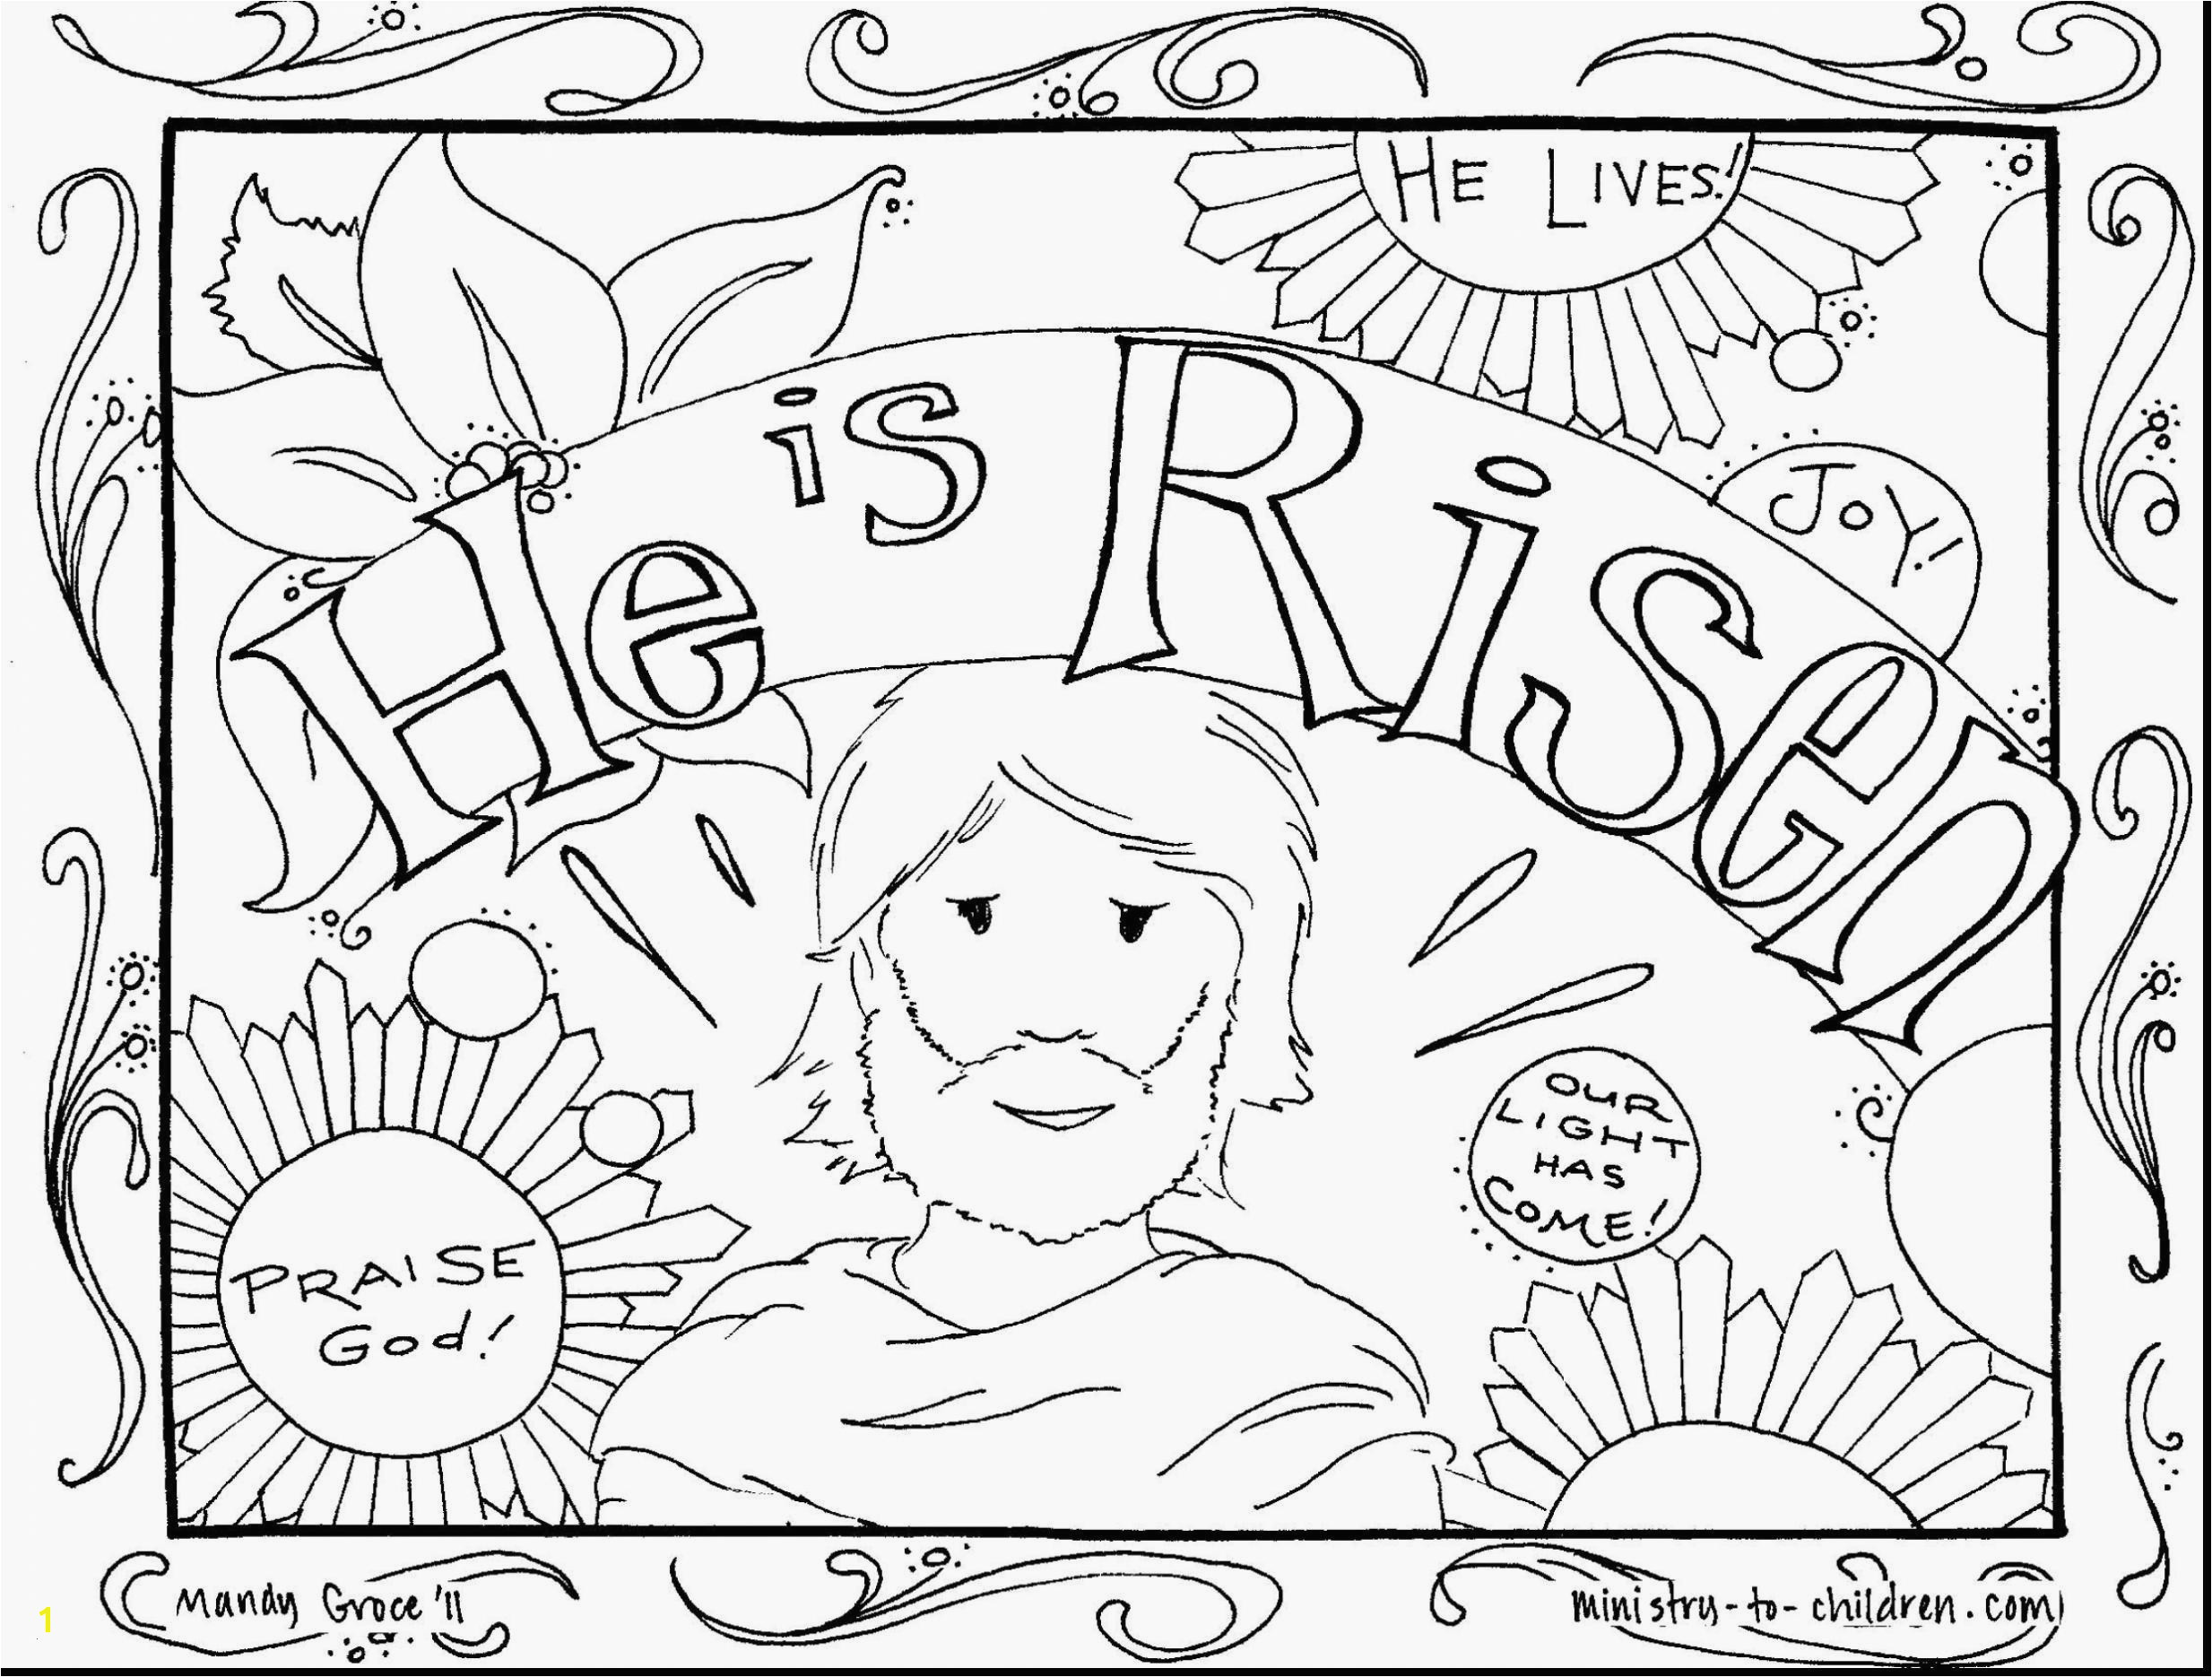 Coloring page jesus heals ten lepers ten lepers coloring page coloring pages coloring pages 2467x1870